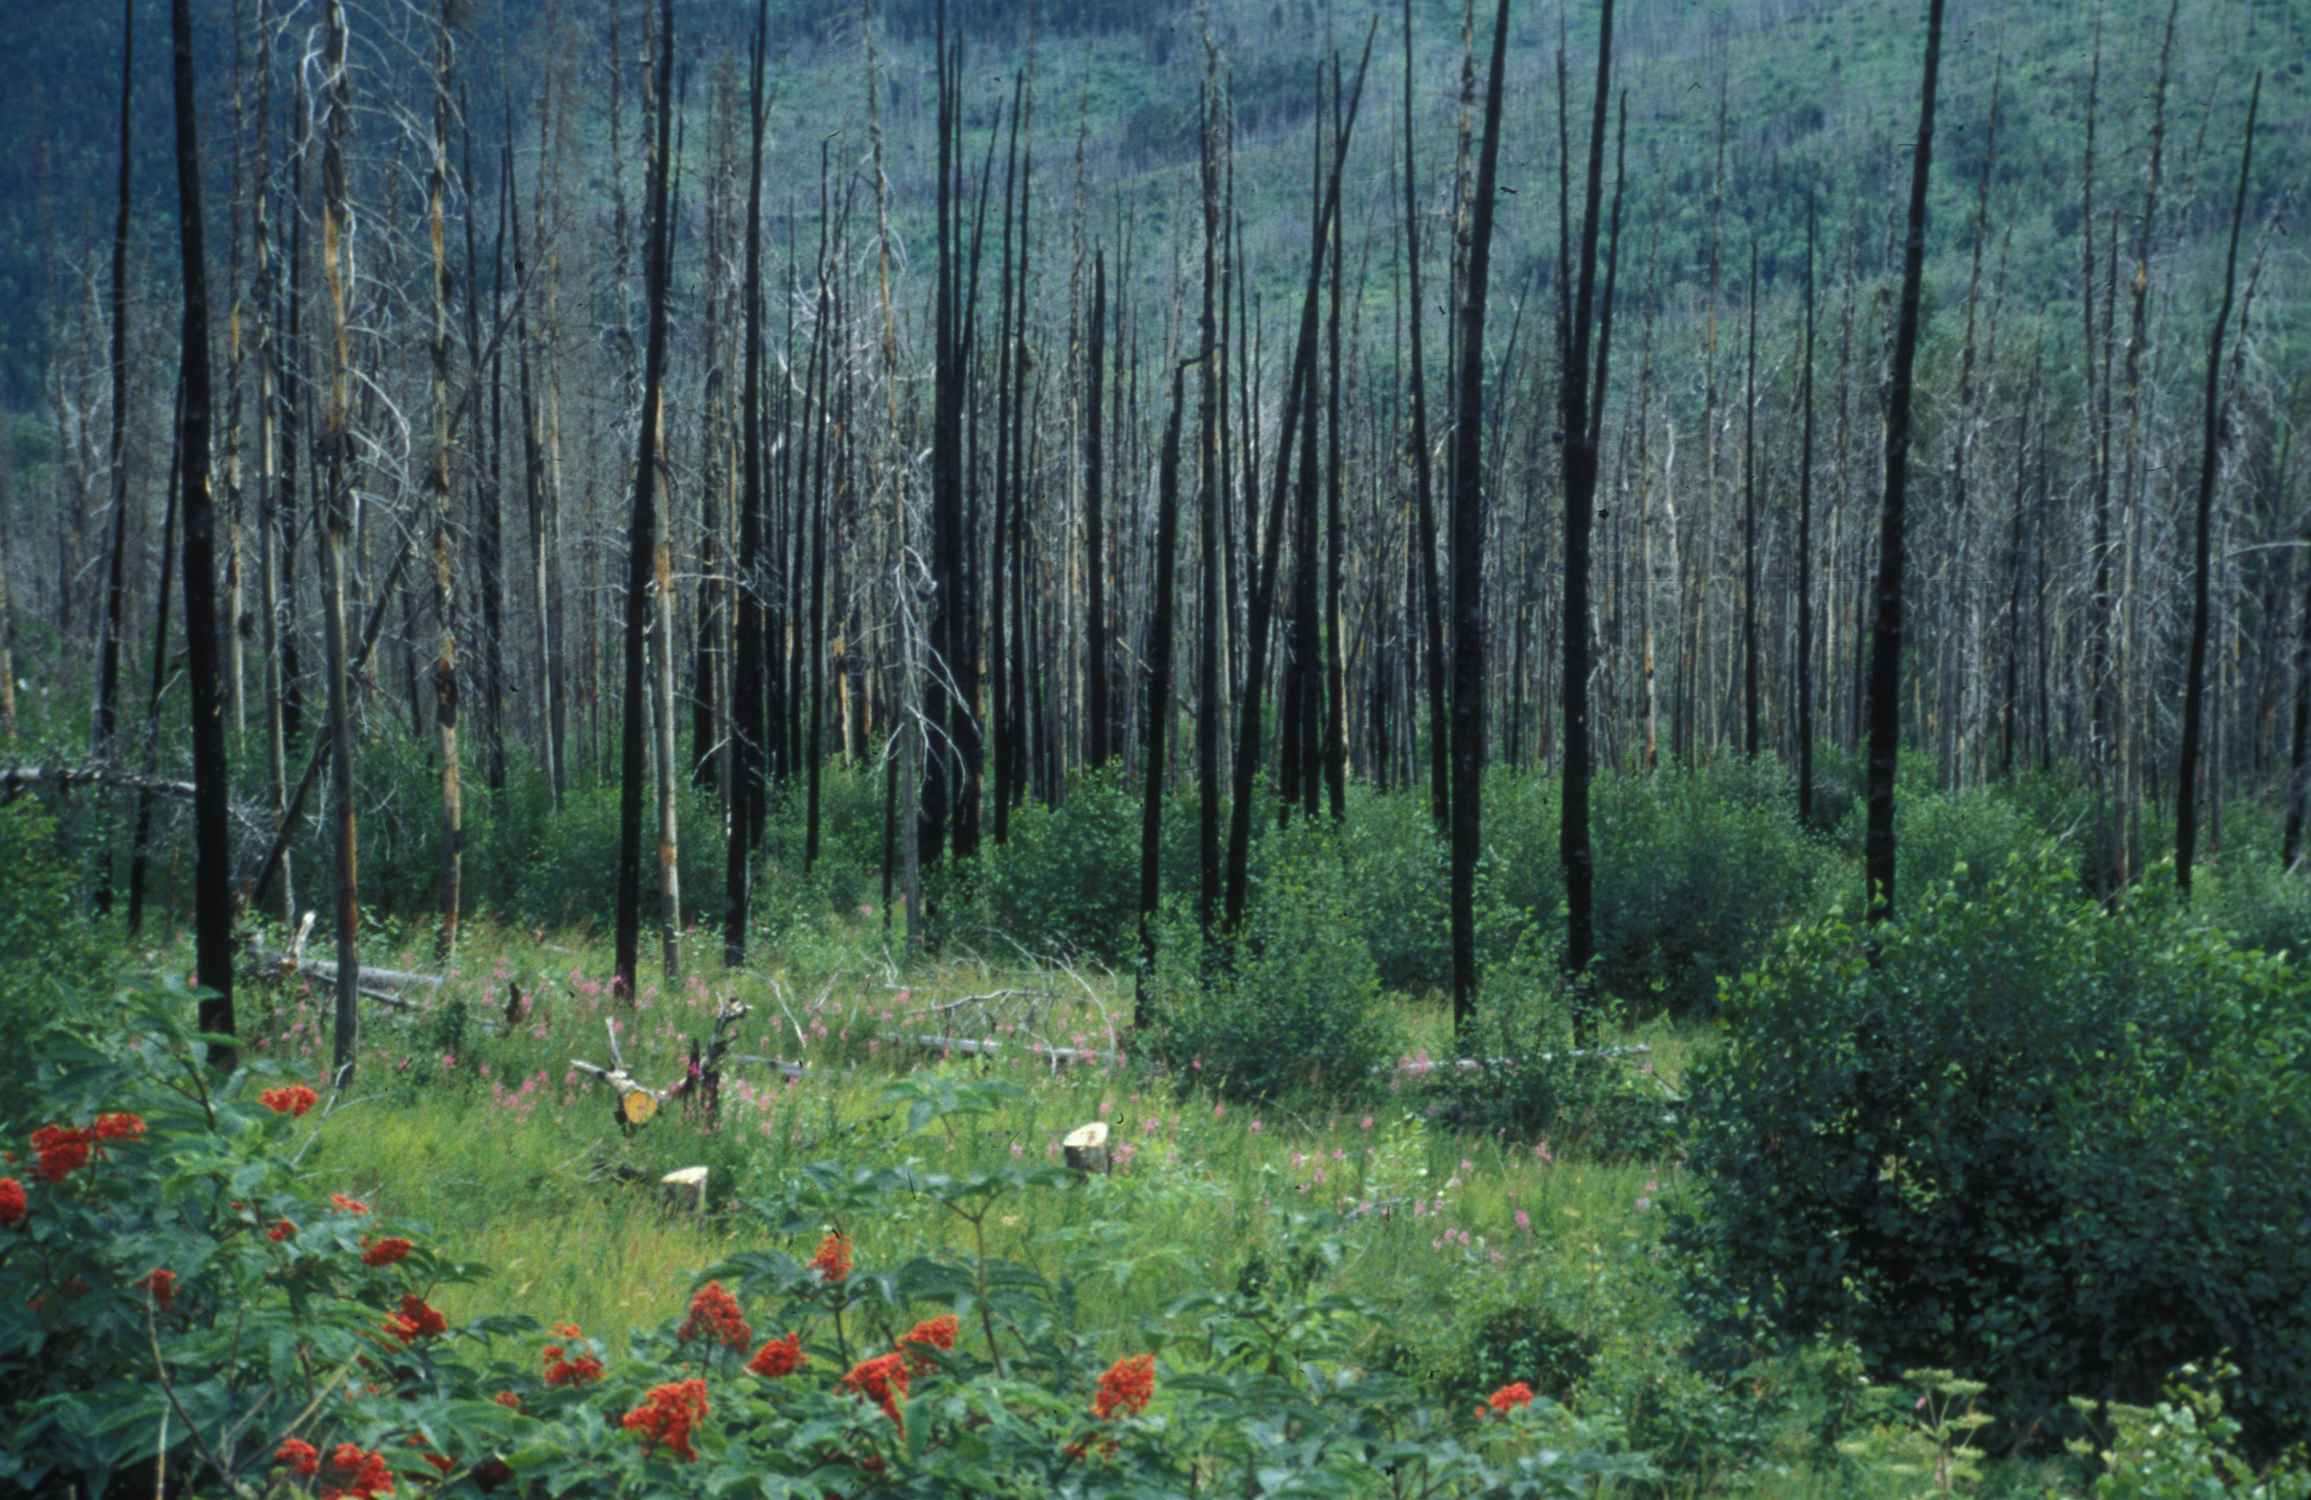 File:Regrowth after forest fire.jpg - Wikimedia Commons